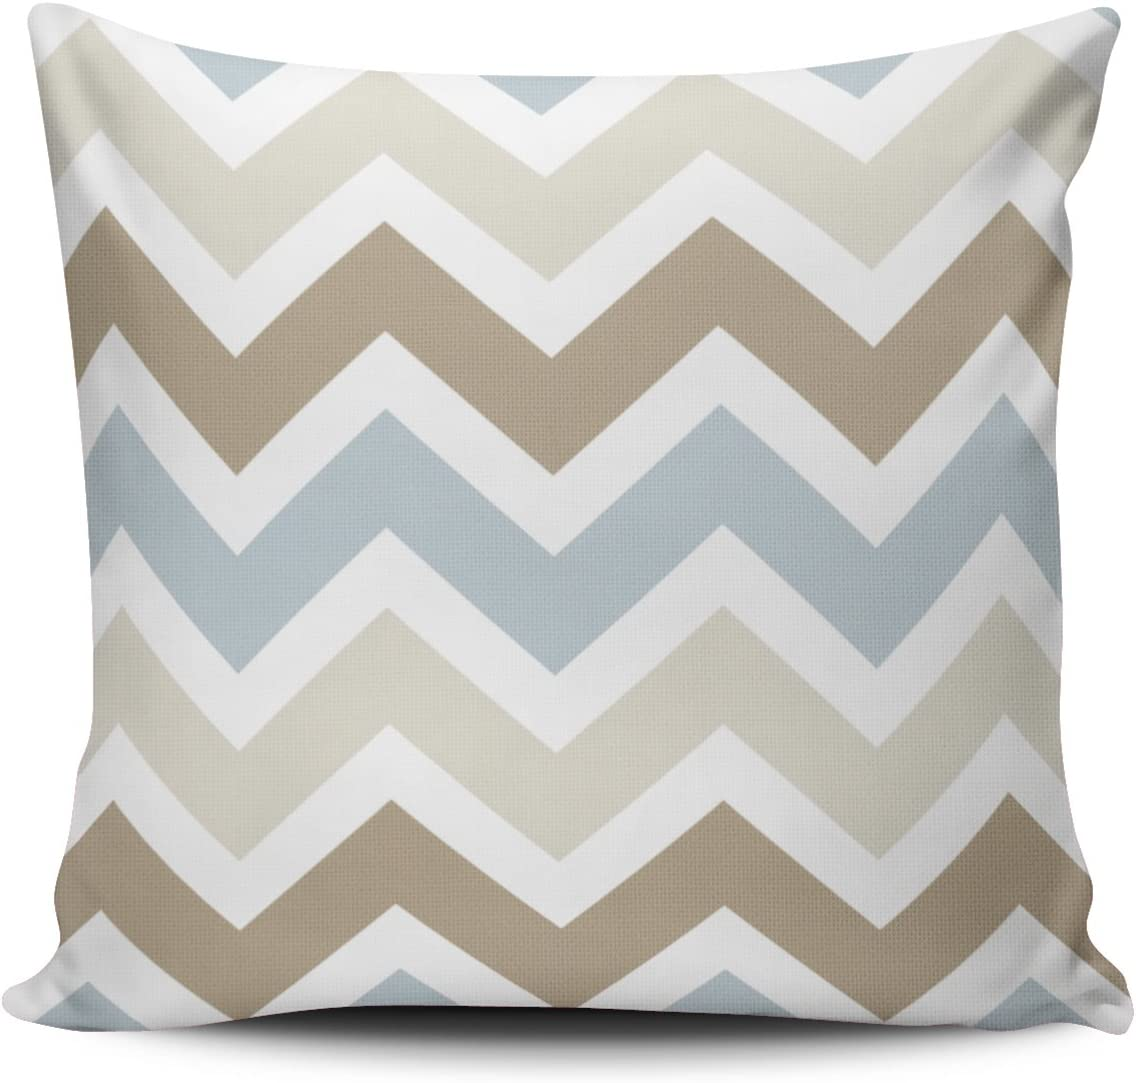 Fanaing White Blue Gray Tan and Brown Chevron Pillowcase Home Sofa Decorative 16X16 Inch Square Throw Pillow Case Decor Cushion Covers One-Side Printed